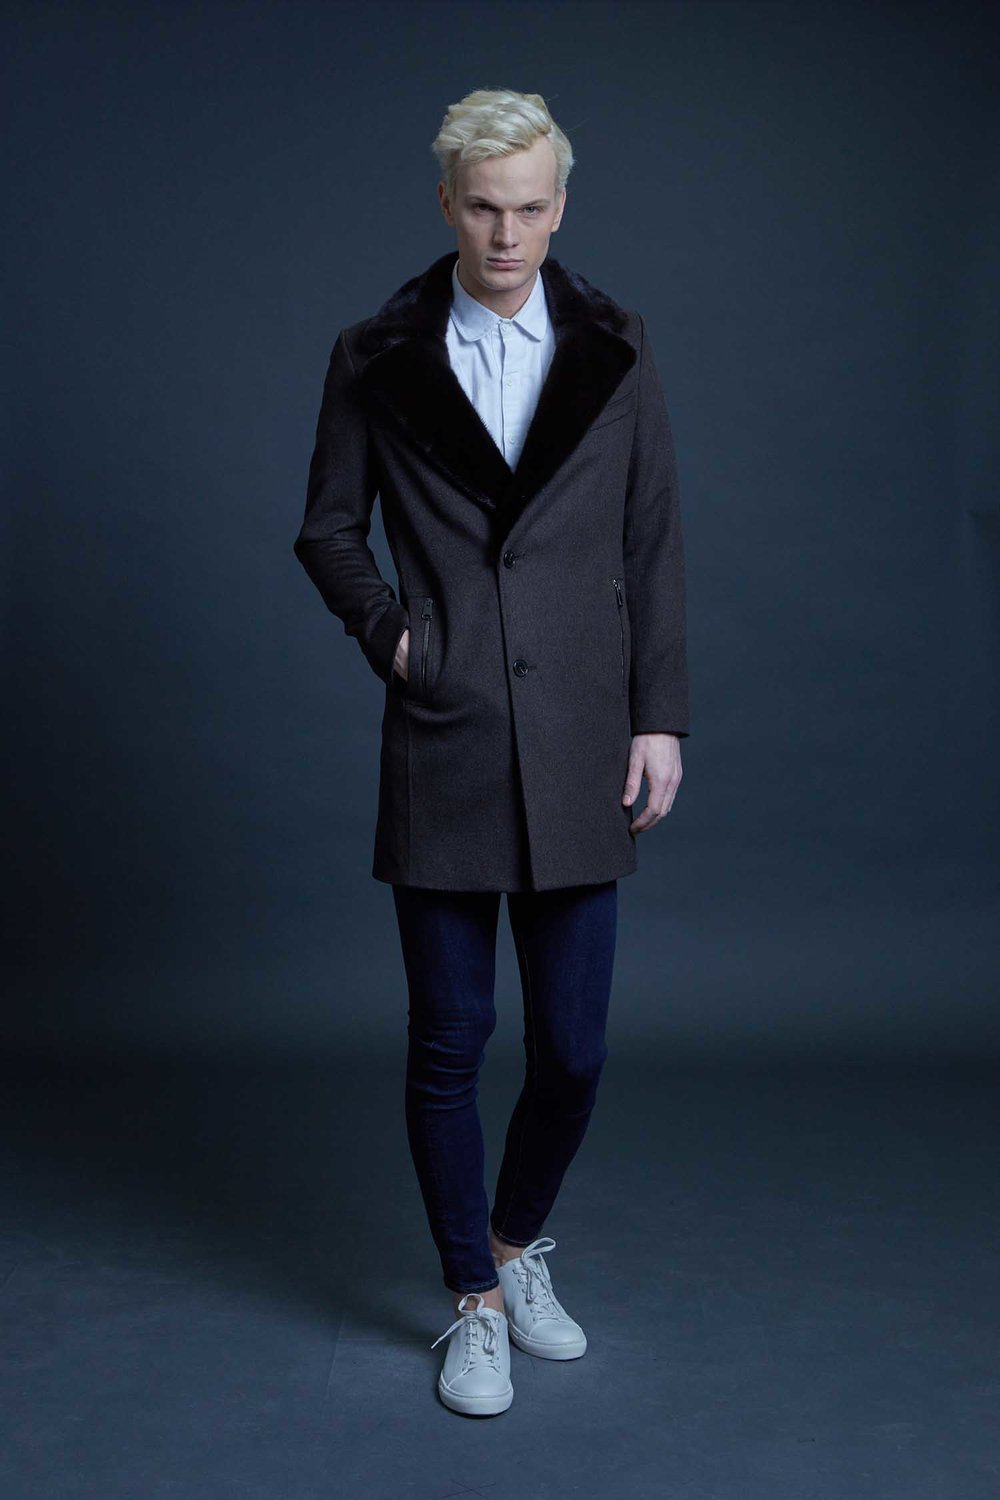 pat-flesher-furs-coat-grey-collar-black-men.jpg